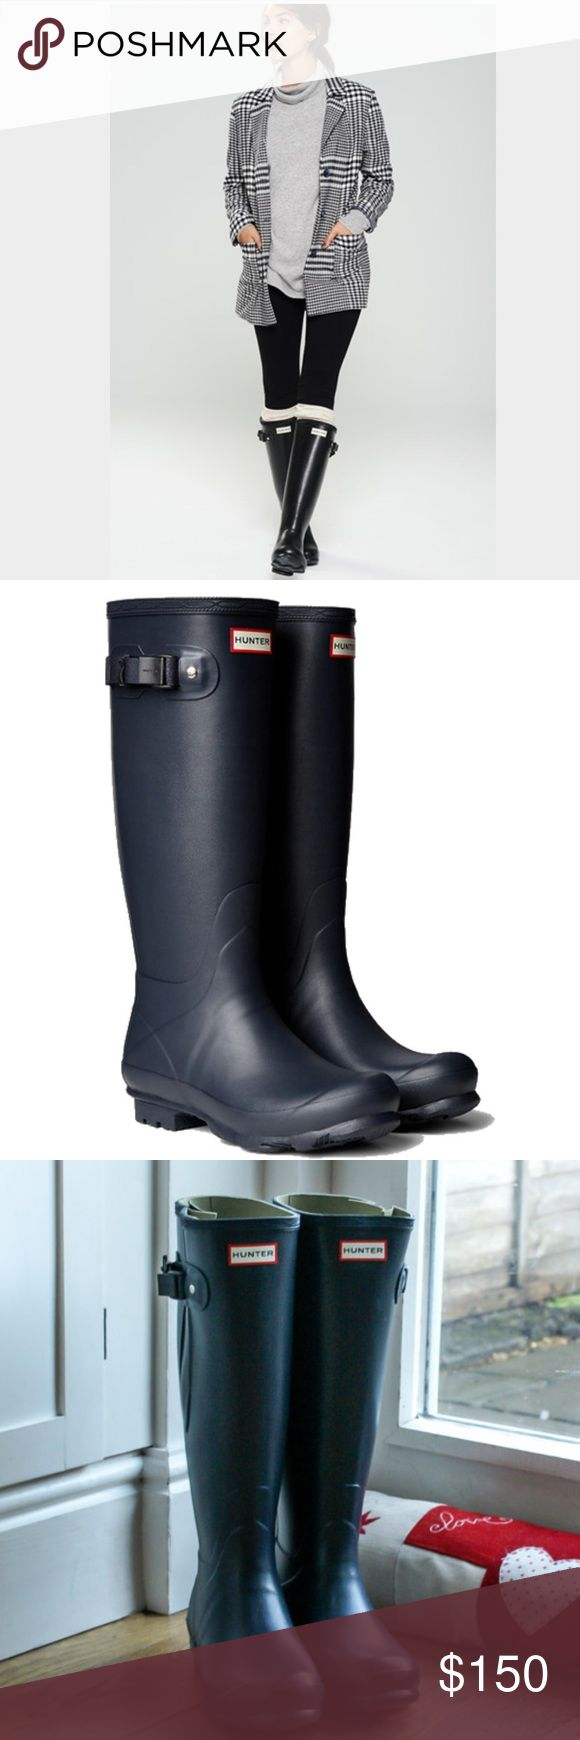 """NWT Navy Hunter Boots The classic rubber rain boot offers durable wet-weather protection and features a textile lining for added comfort. An adjustable buckle at the top adds a stylish touch, while the textured rubber sole provides enhanced traction. 16"""" boot shaft; 16"""" calf circumference. Hunter Shoes"""